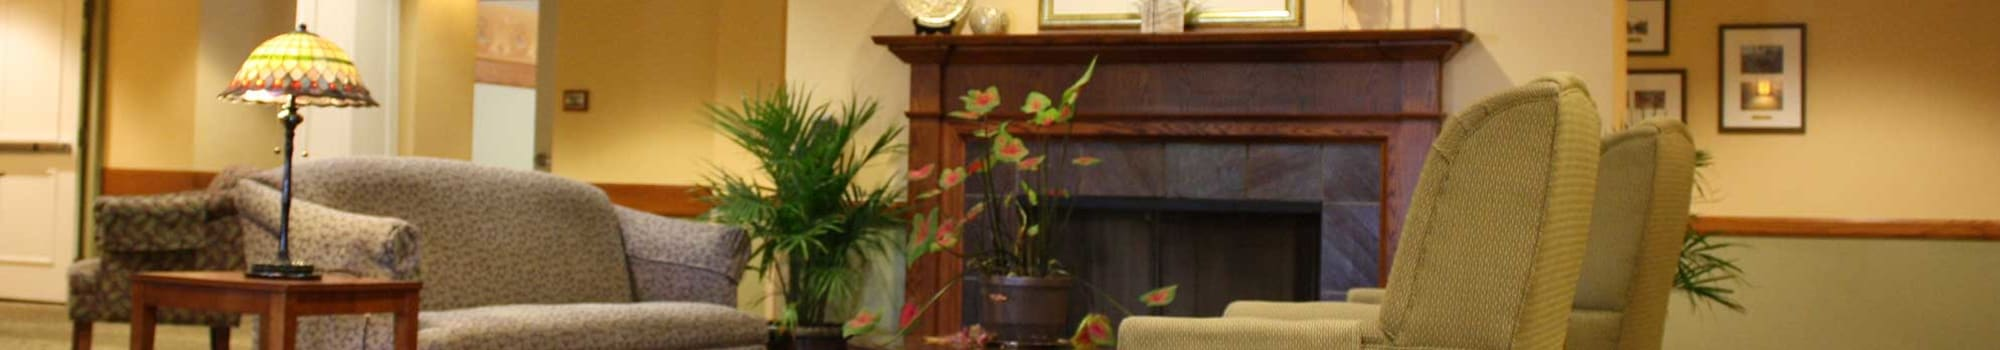 Senior living options in Calumet City, IL